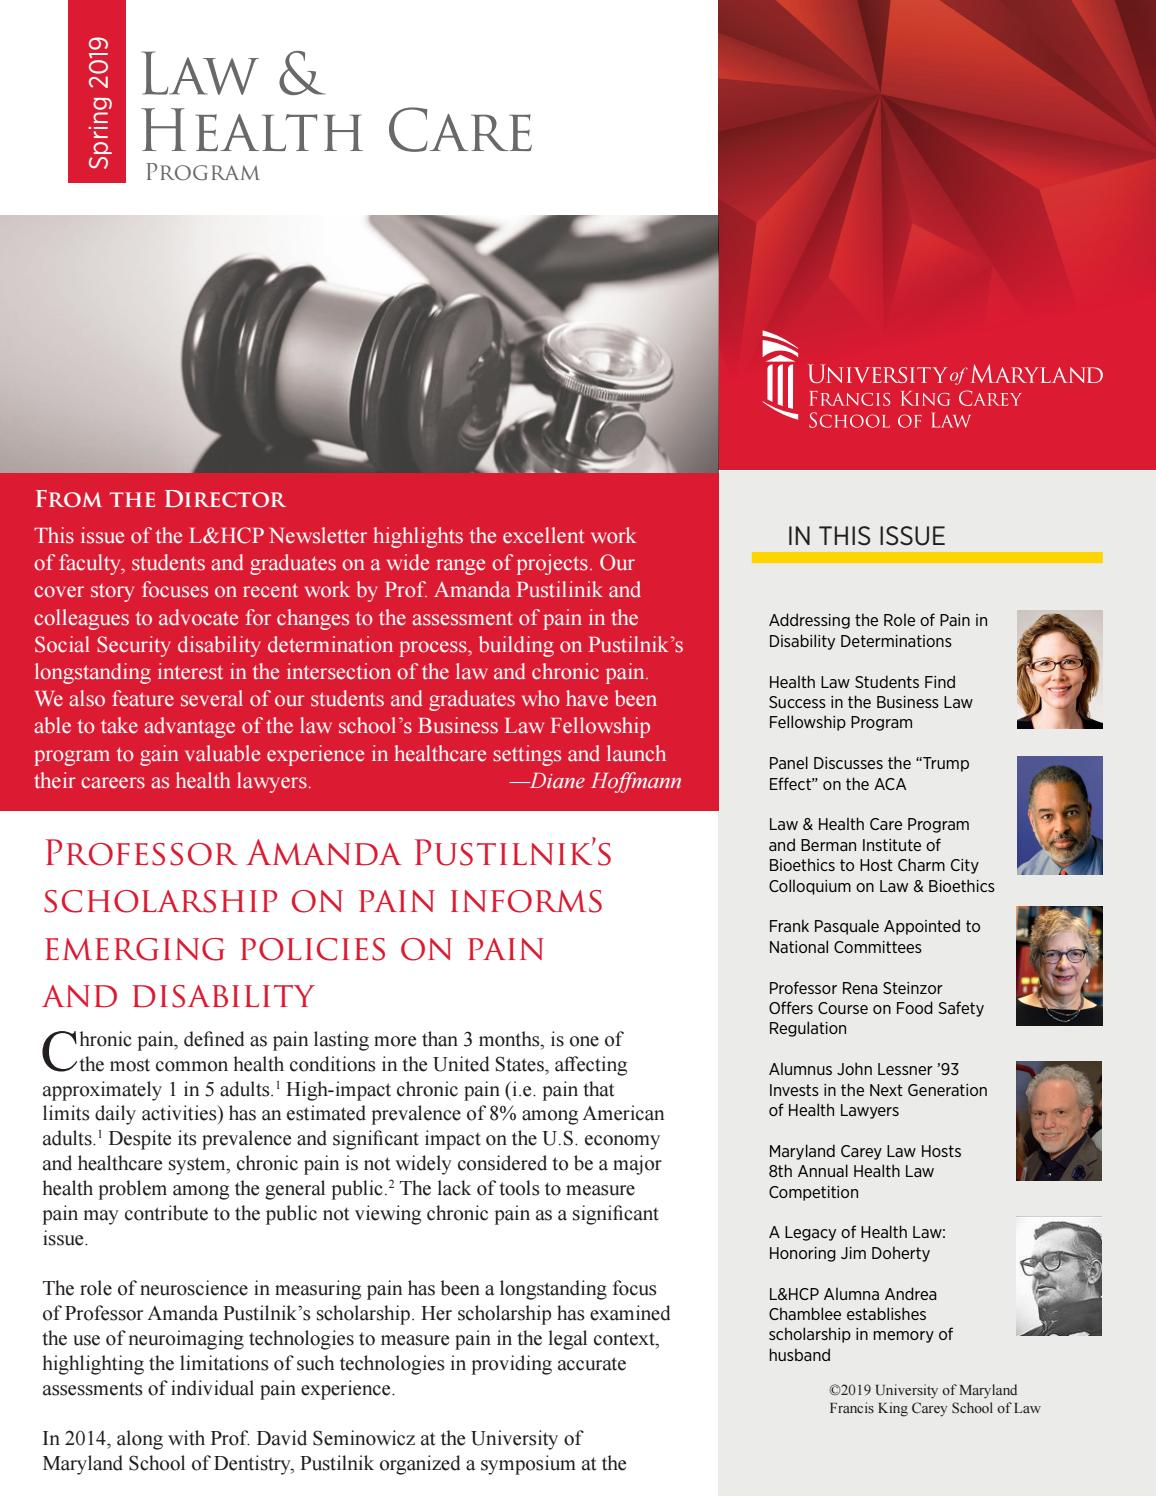 Law & Health Care Program Spring 2019 Newsletter by Maryland